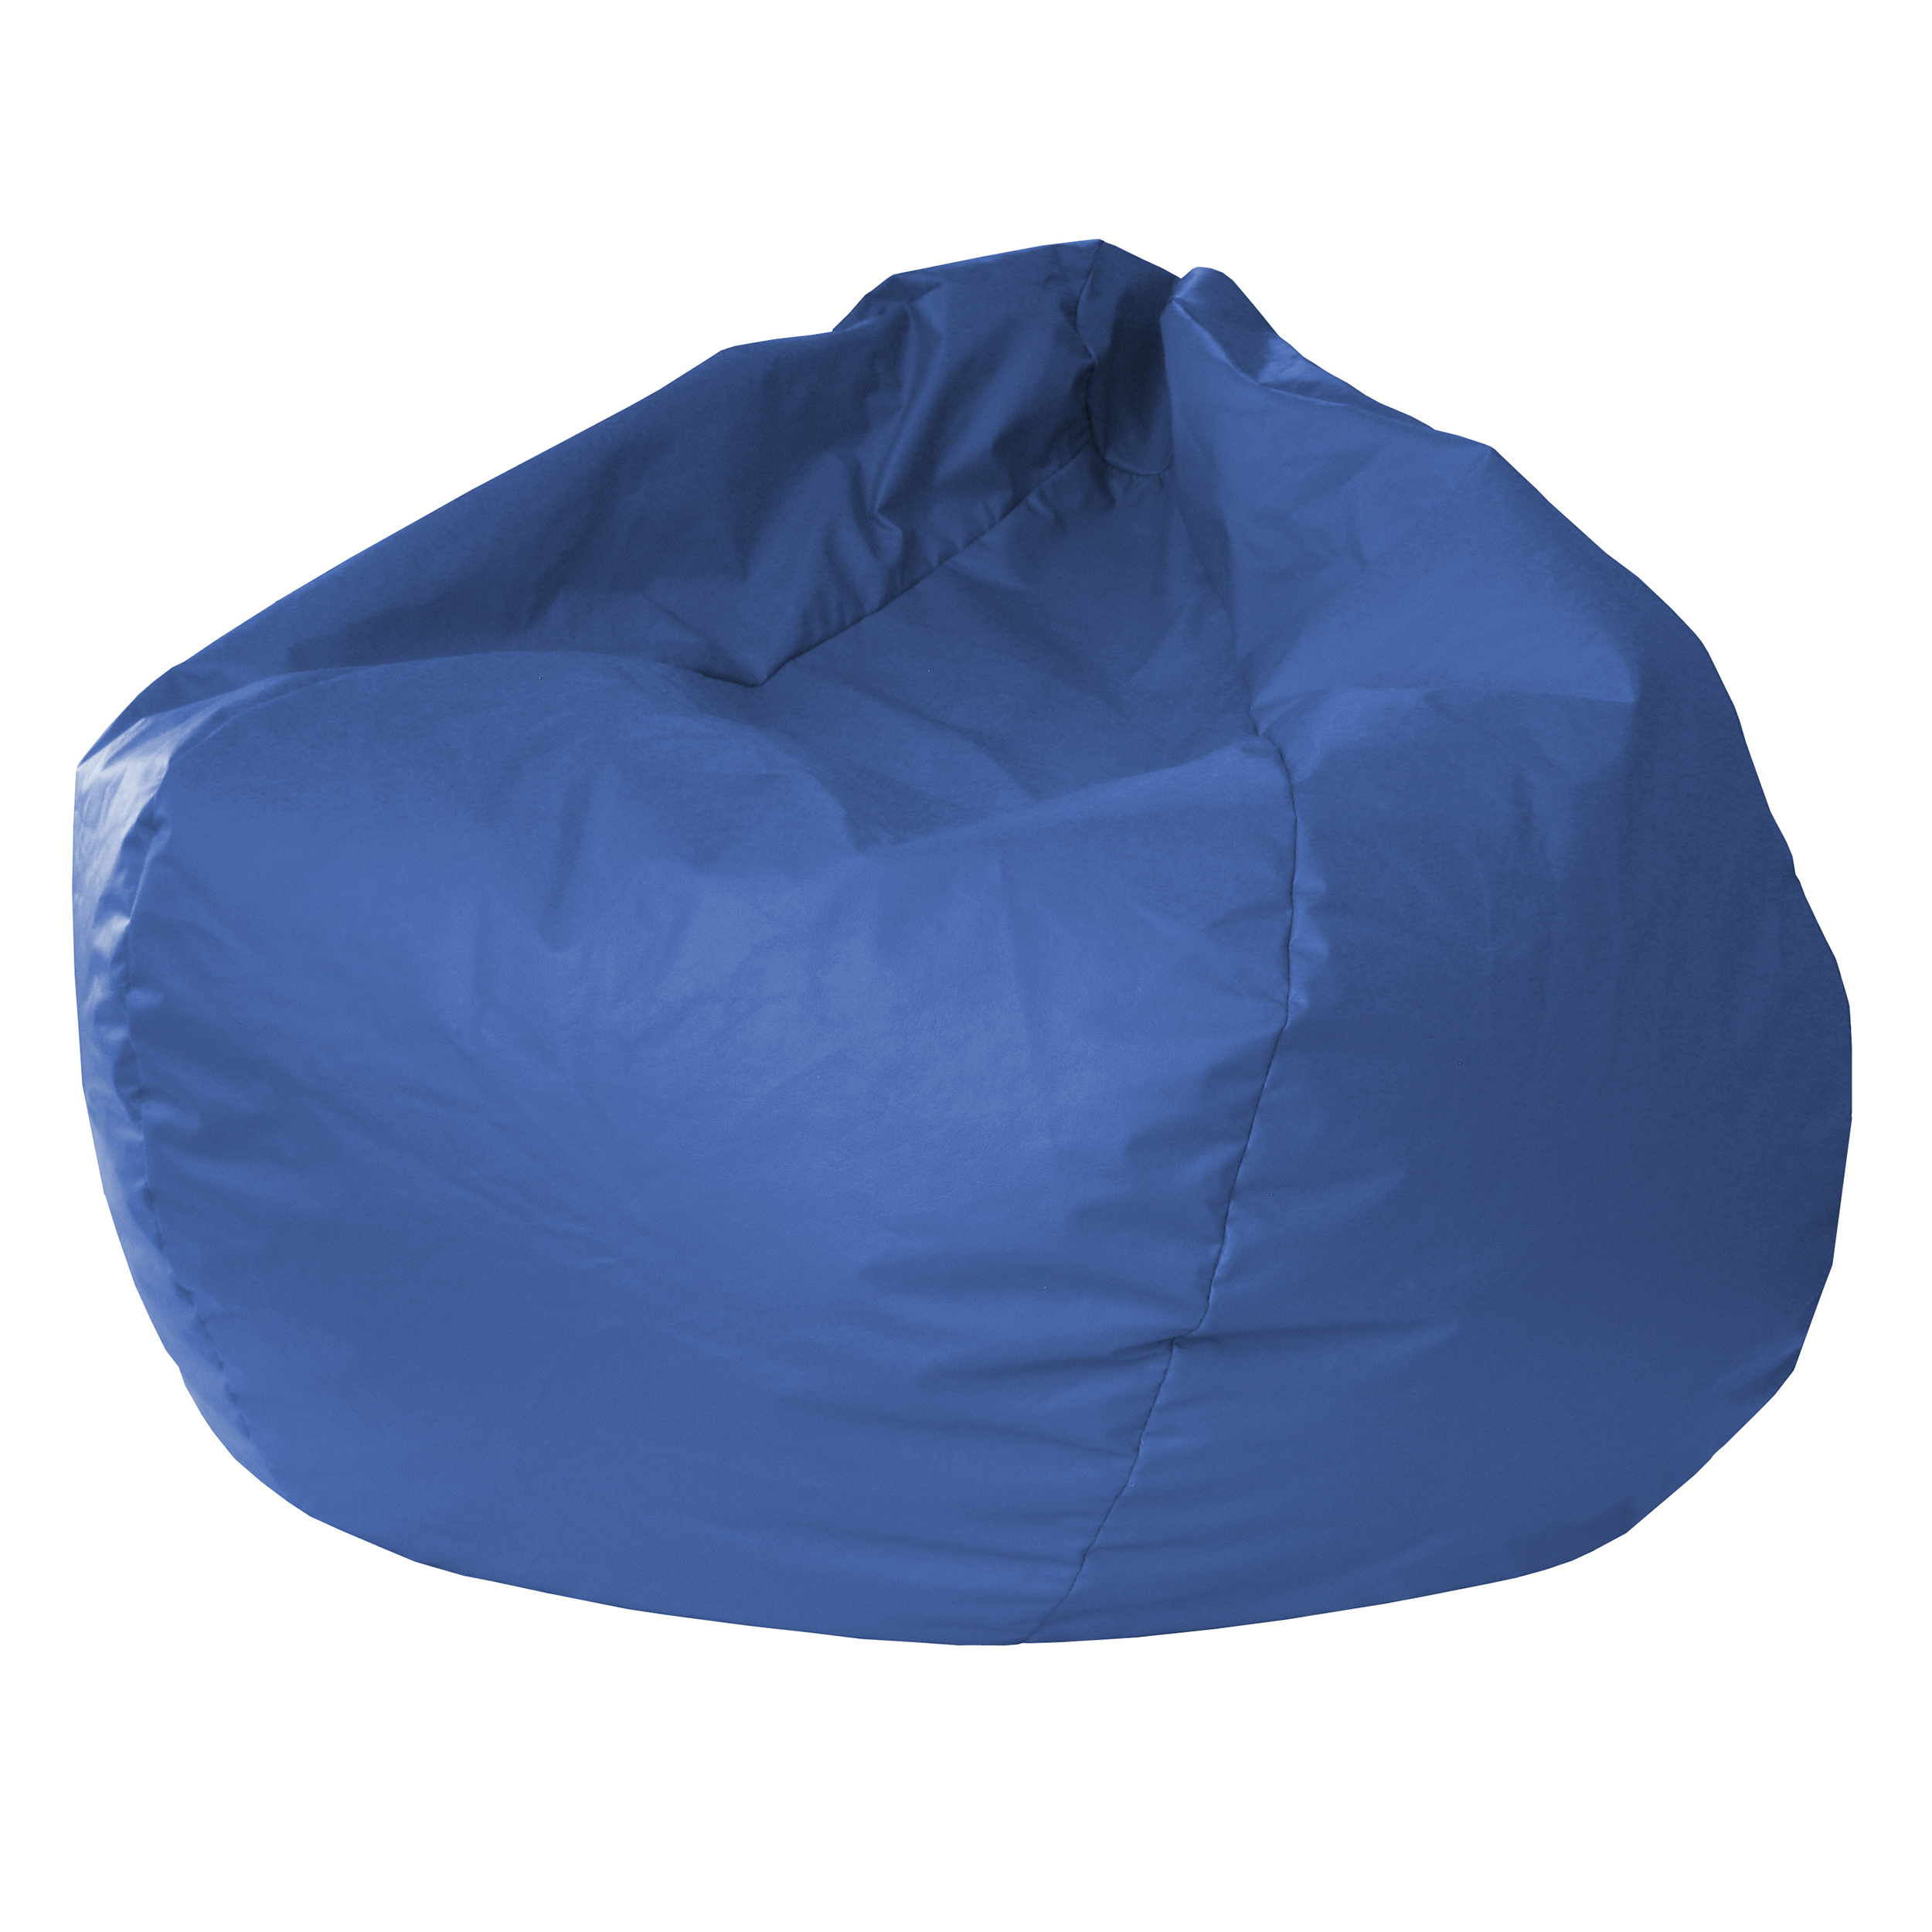 "Gold Medal Large 128"" Blue Faux Leather Bean Bag"